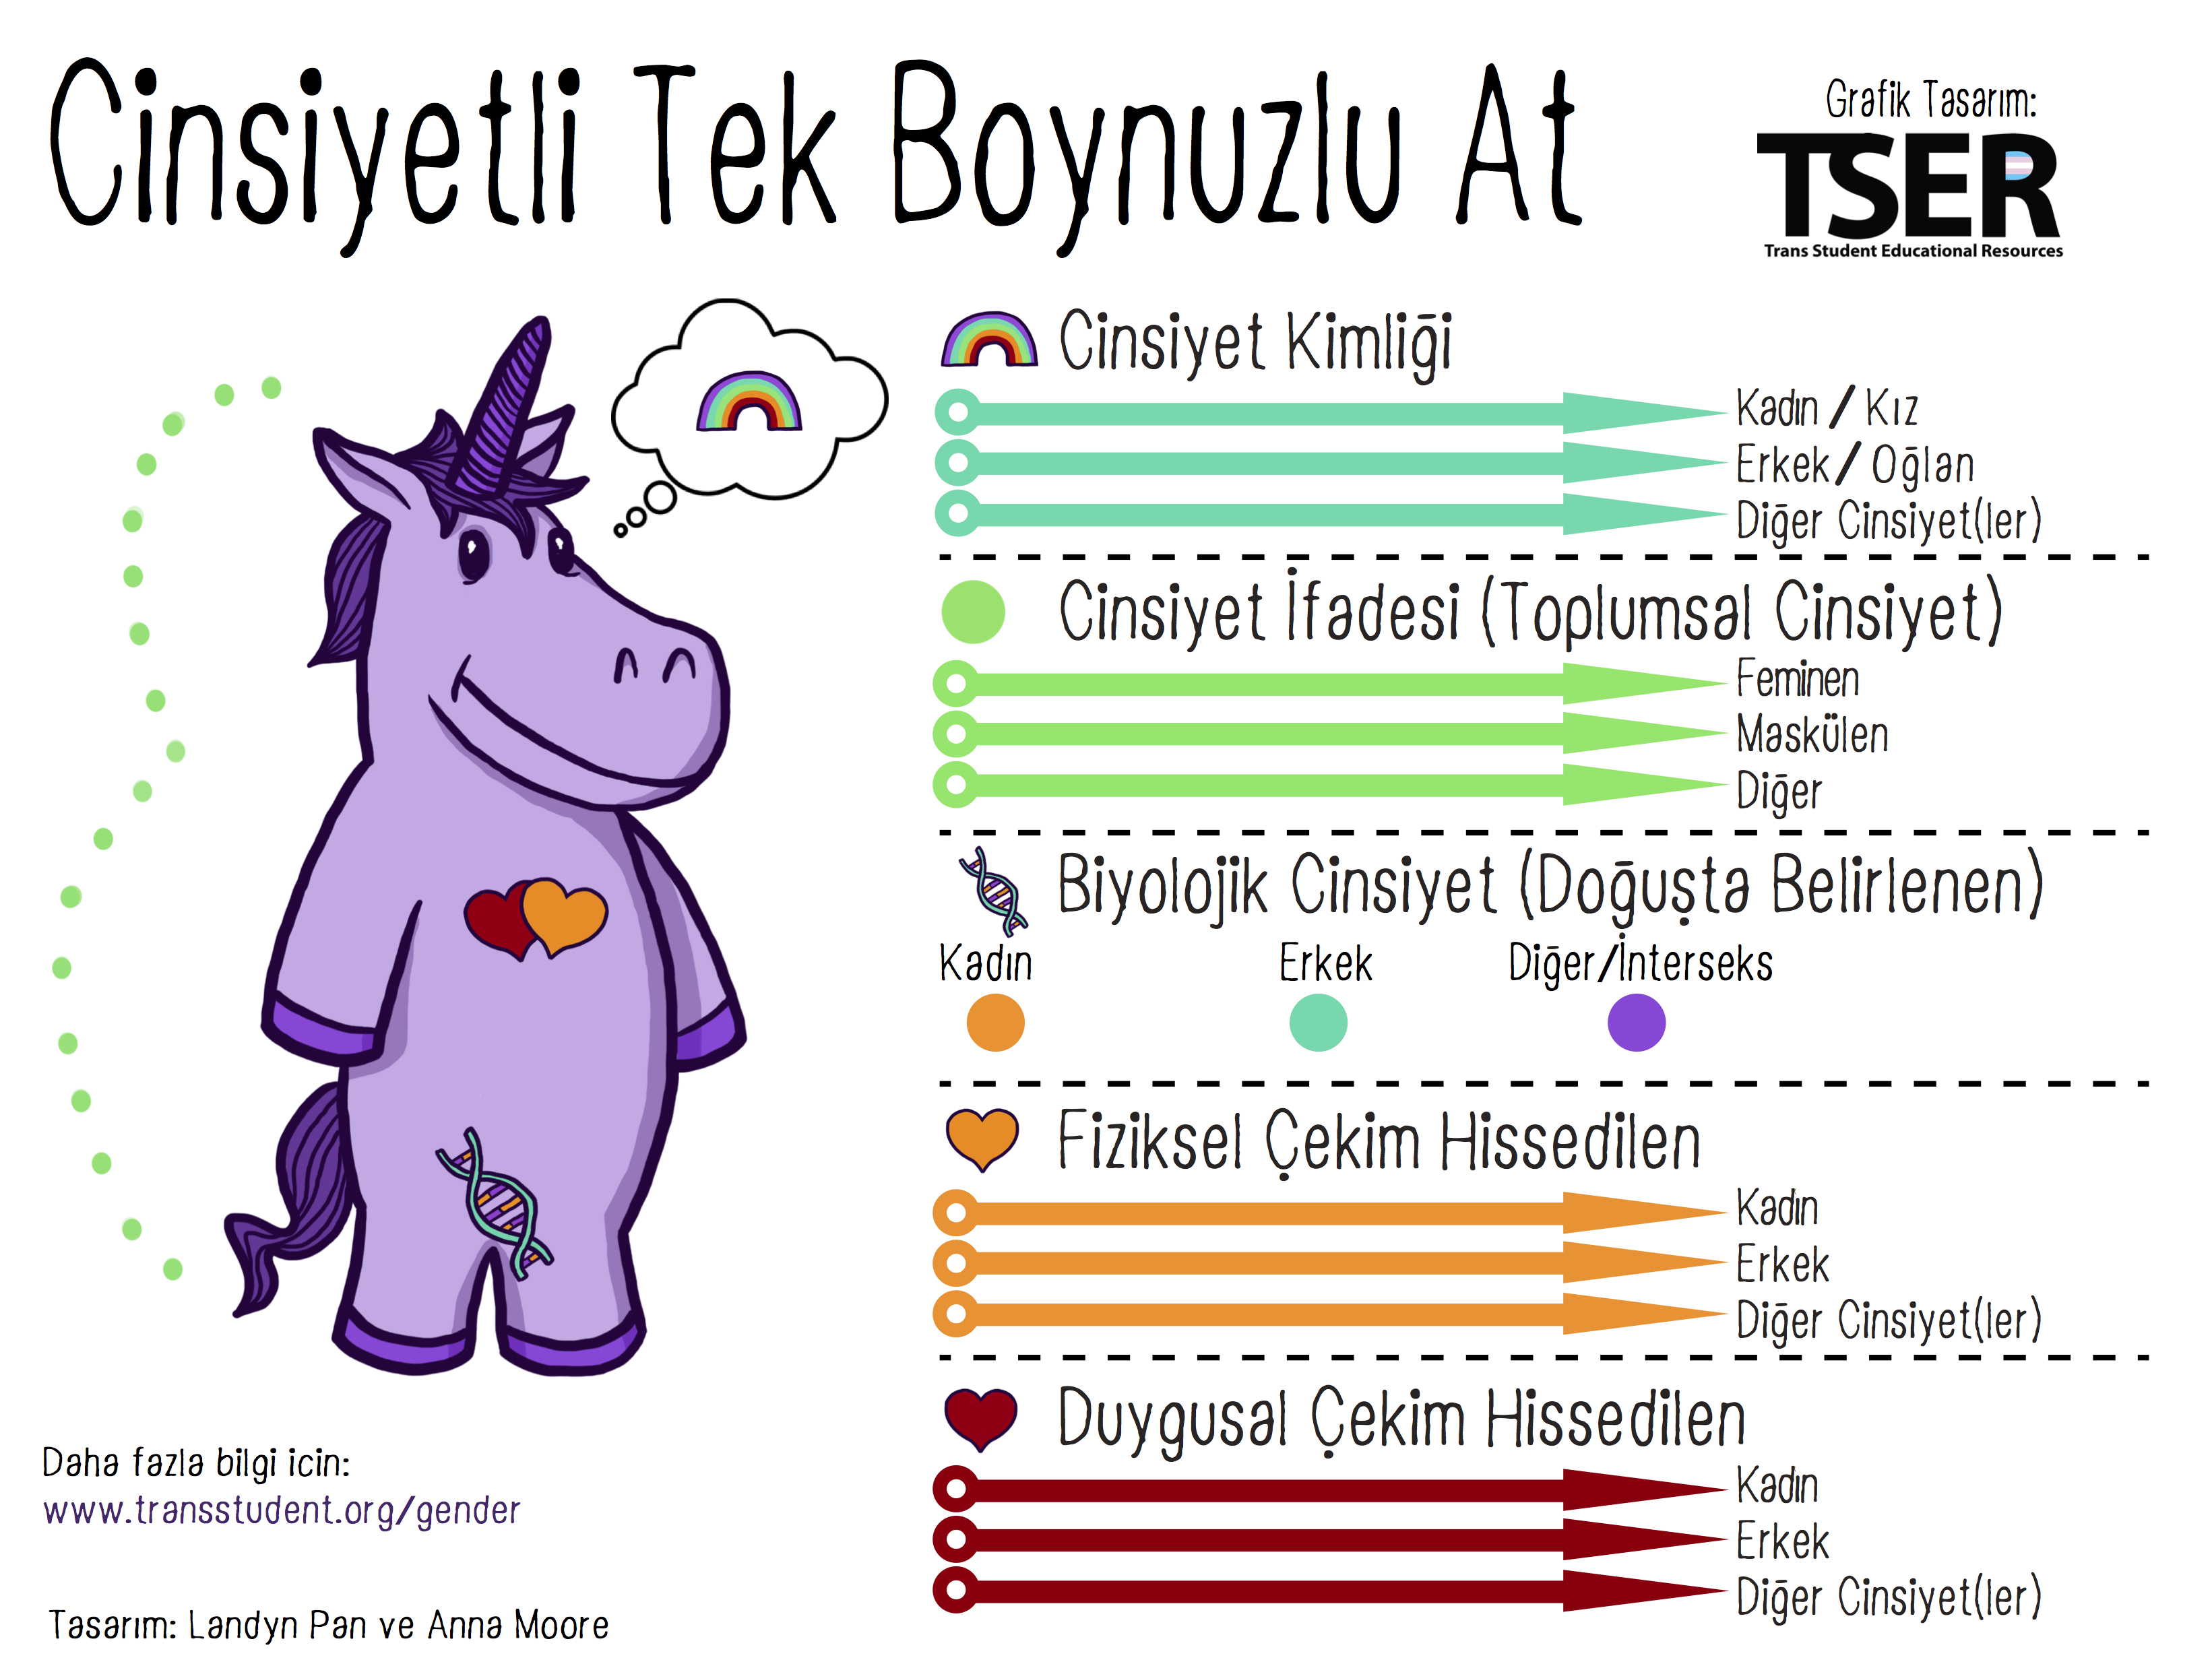 The Gender Unicorn – Trans Student Educational Resources